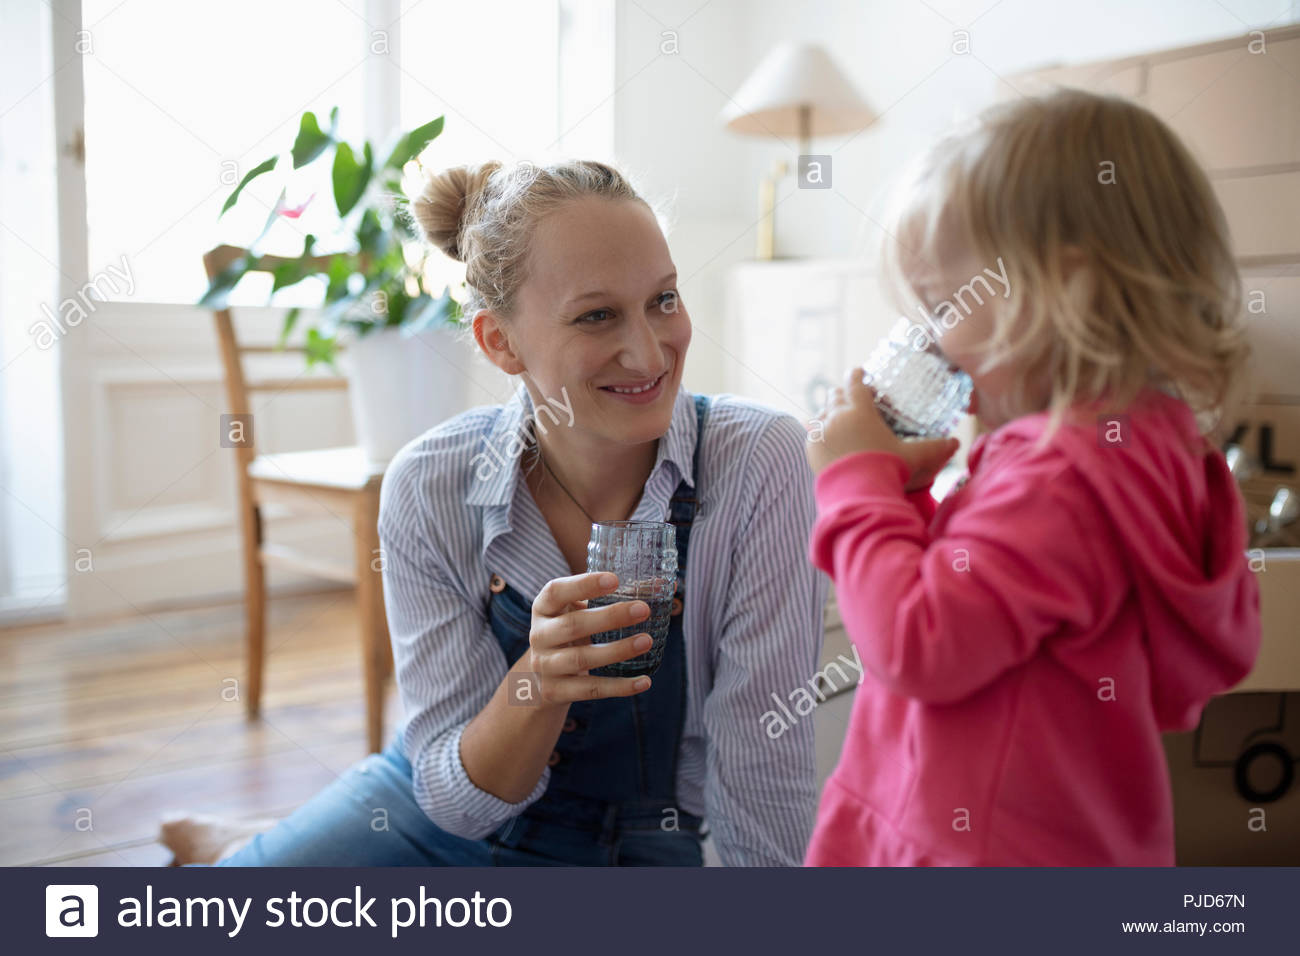 Mother and daughter drinking water, taking a break from moving in - Stock Image